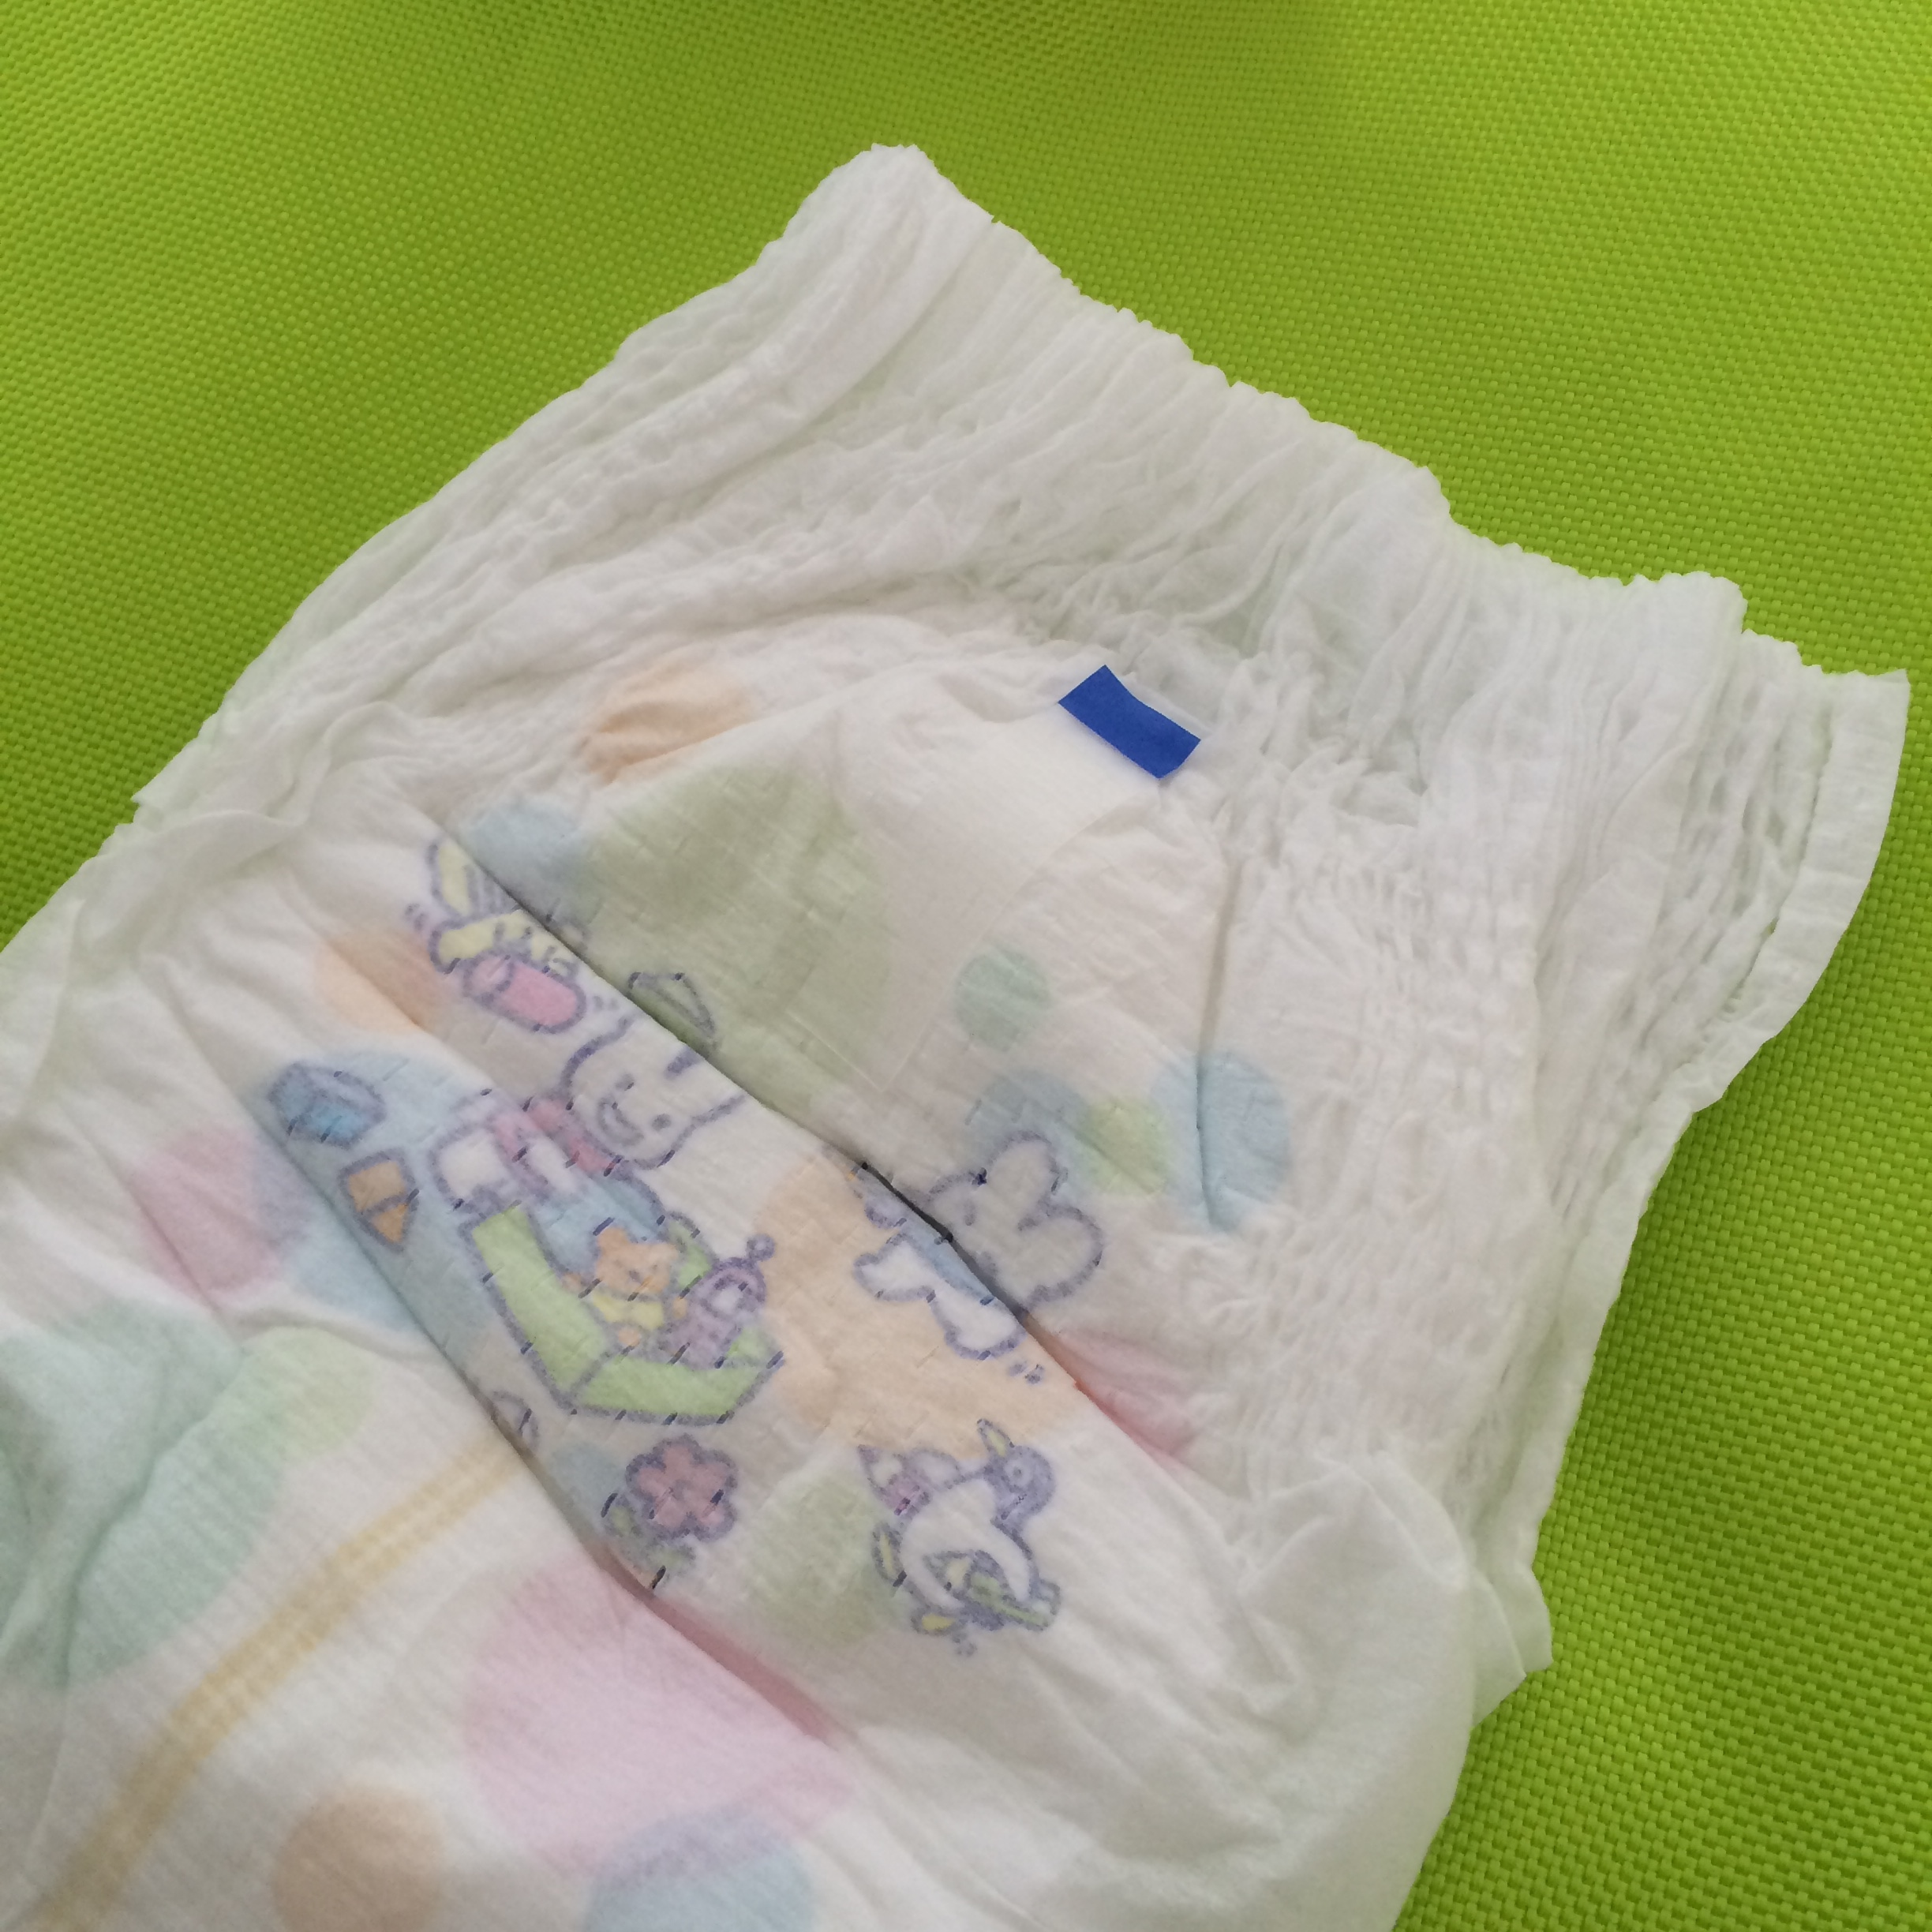 Stay Dry Merry And Active With Merries Walker Pants Baby Diapers New Born 24 S Img 3127